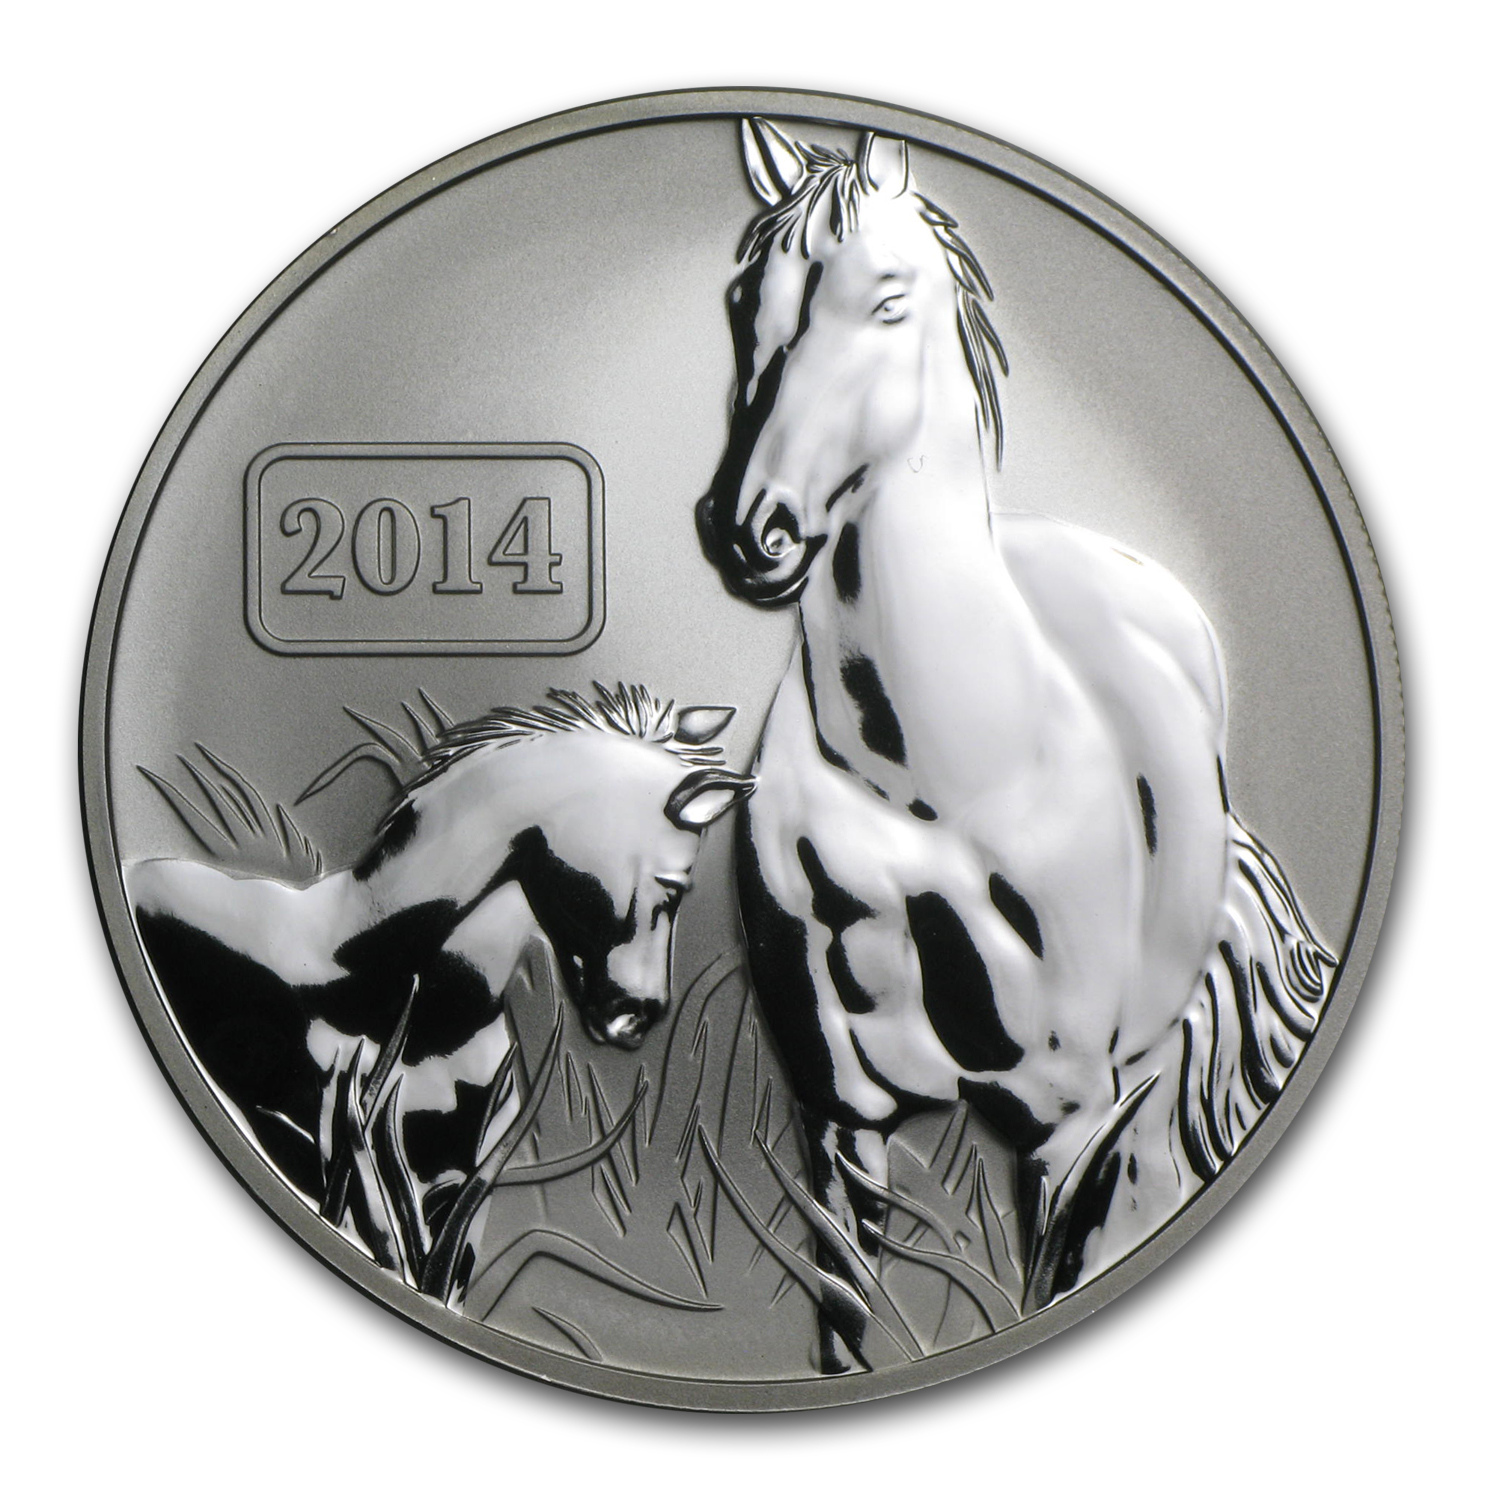 2014 Tokelau 1 oz Silver Lunar Year of the Horse Reverse Proof